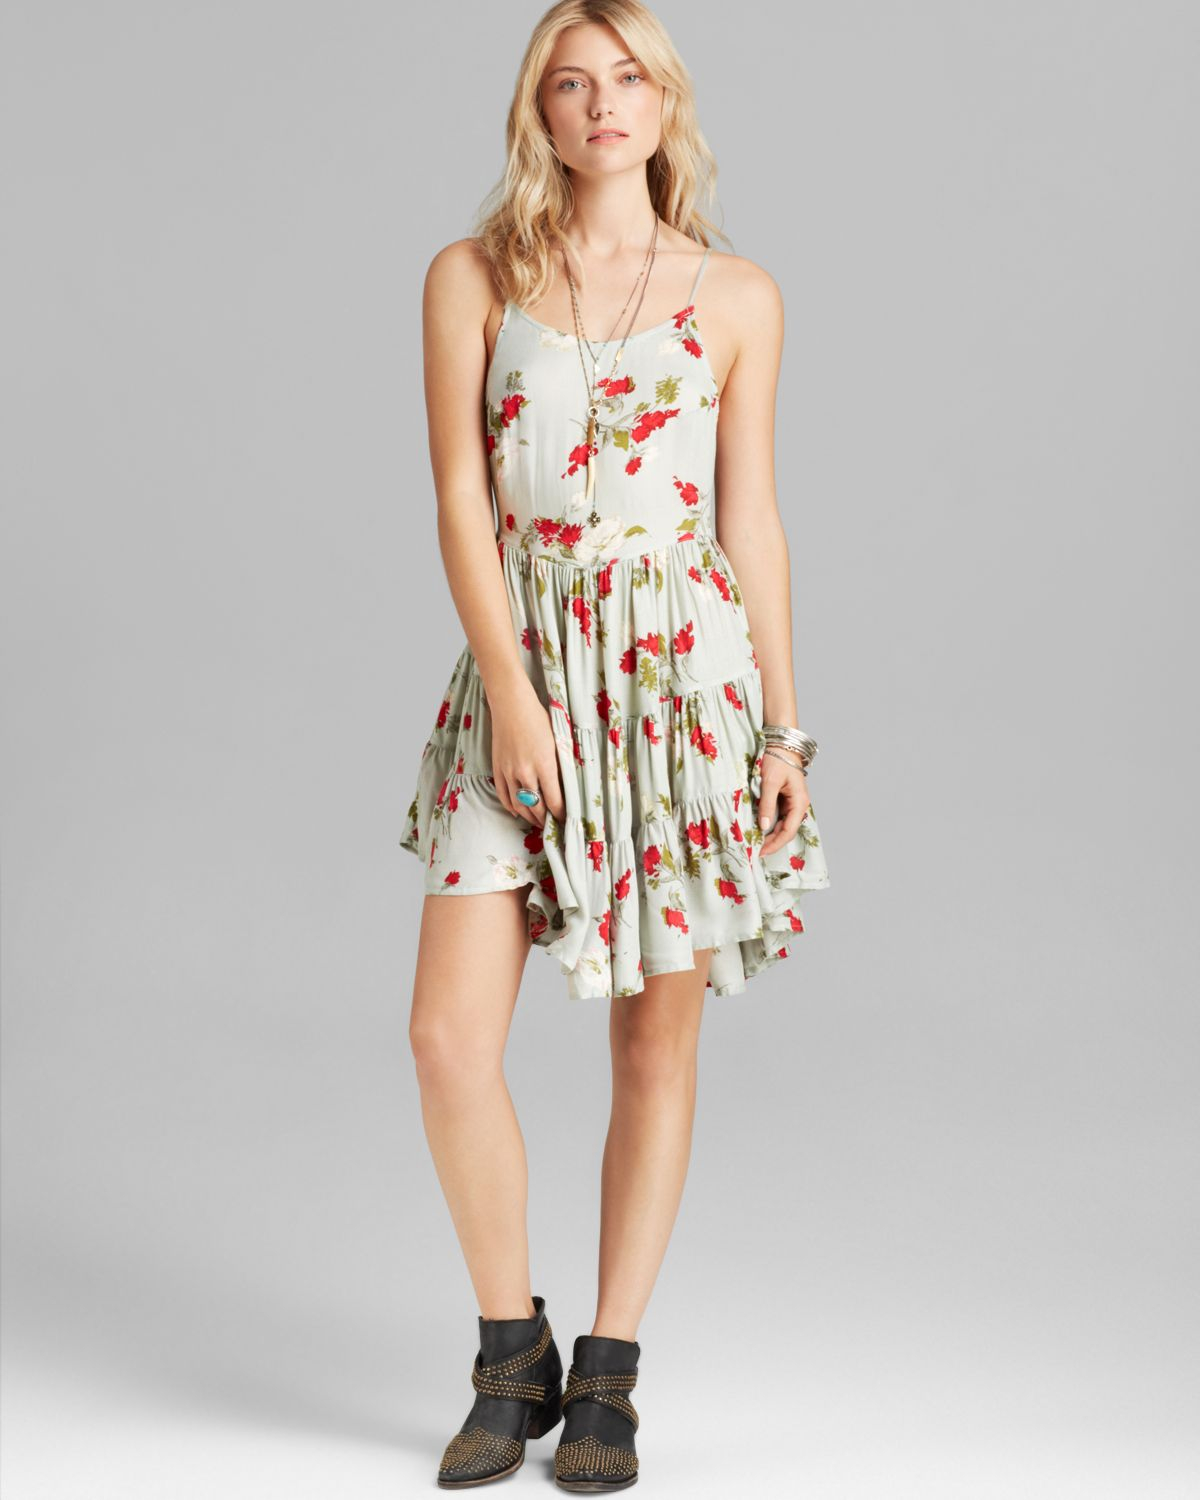 2ca826cab1b7d Free People Slip Dress - Circles Of Flowers in Green - Lyst